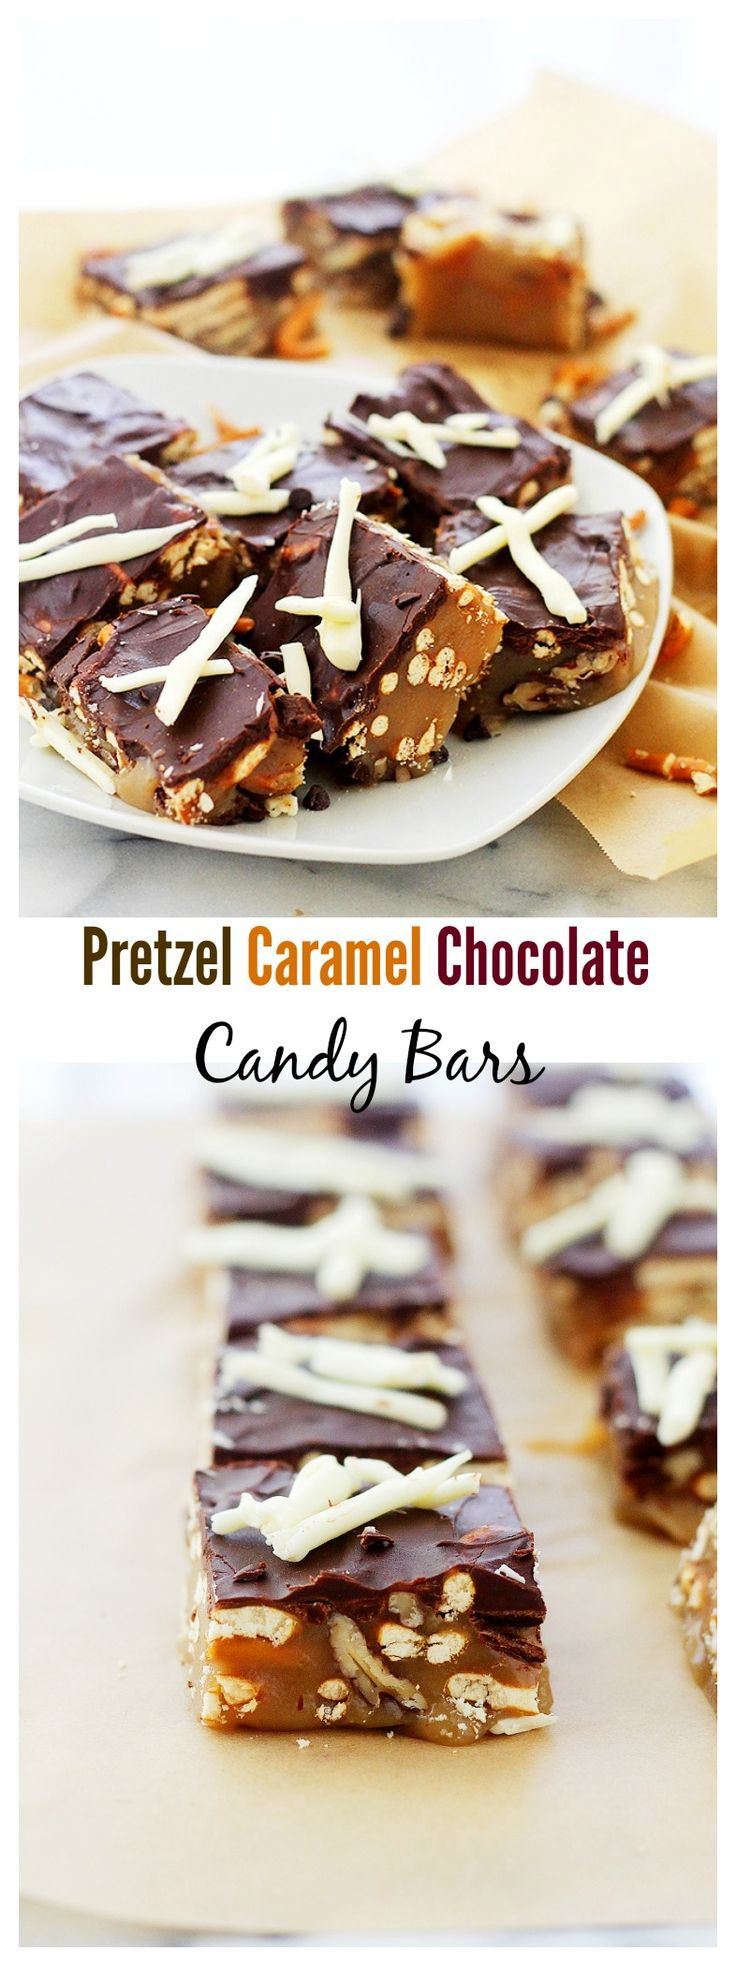 Pretzel Caramel Chocolate Candy Bars | www.diethood.com | Soft, chewy and crunchy candy bars made with pretzels, caramel and chocolate!